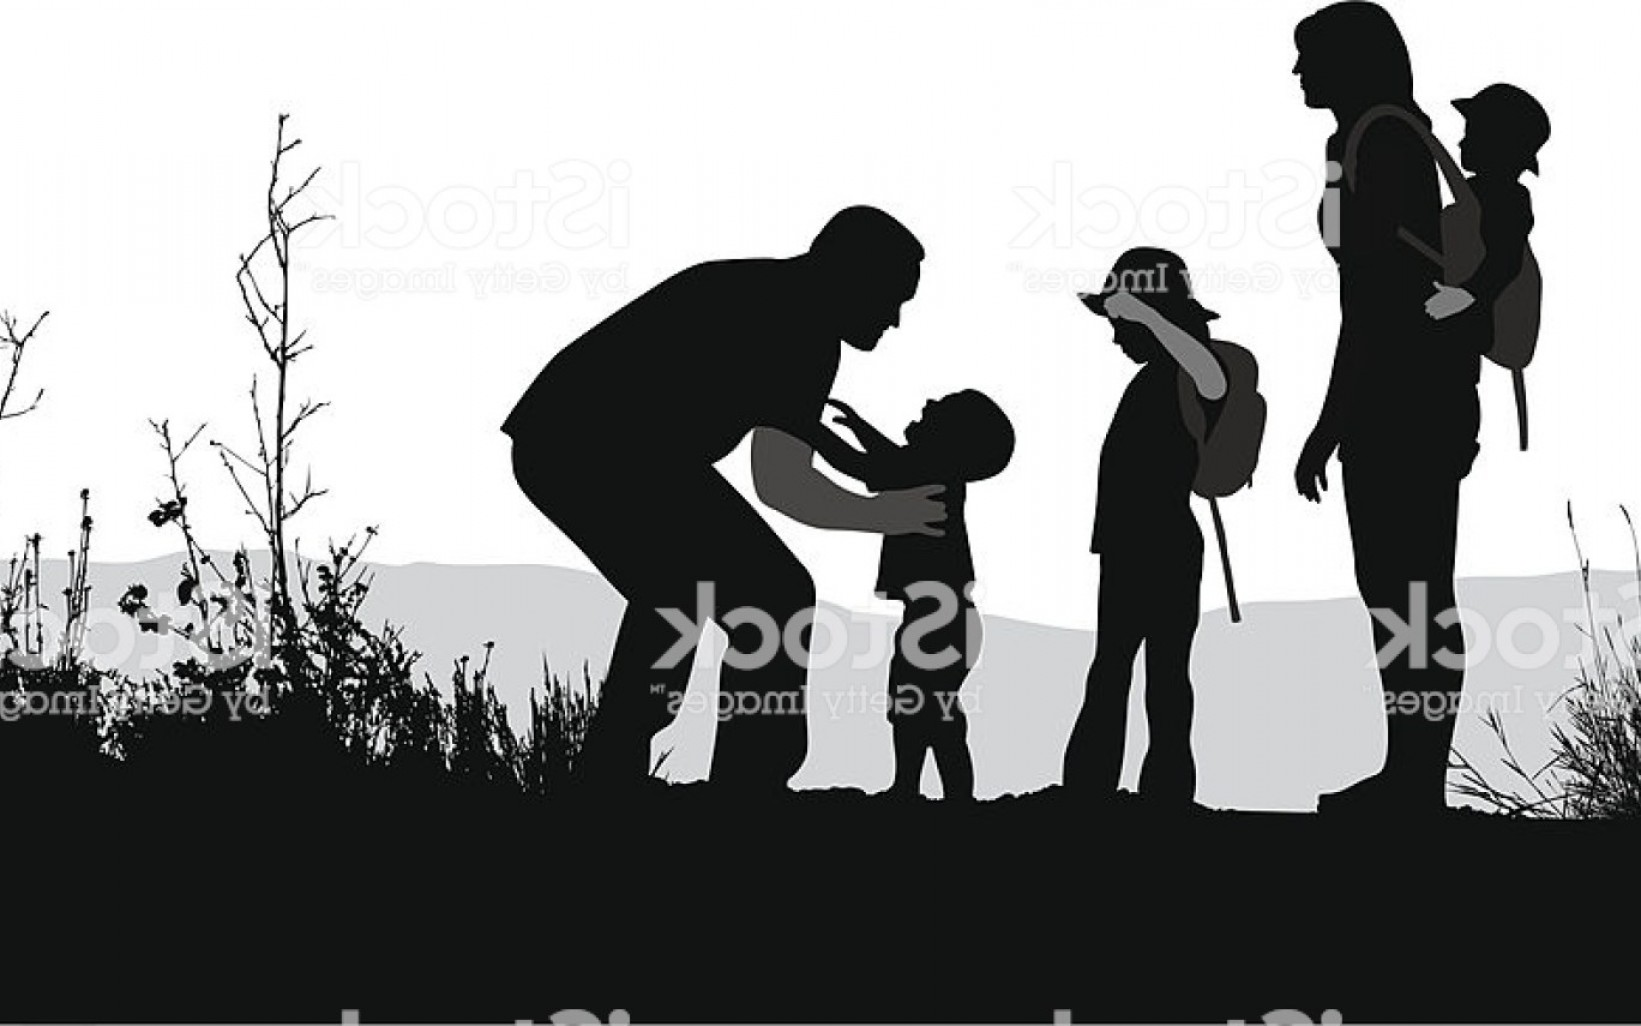 Family Silhouette Vector Art: Young Family Vector Silhouette Stock Vector Art More Images Of Wwazgypvhlmrghw